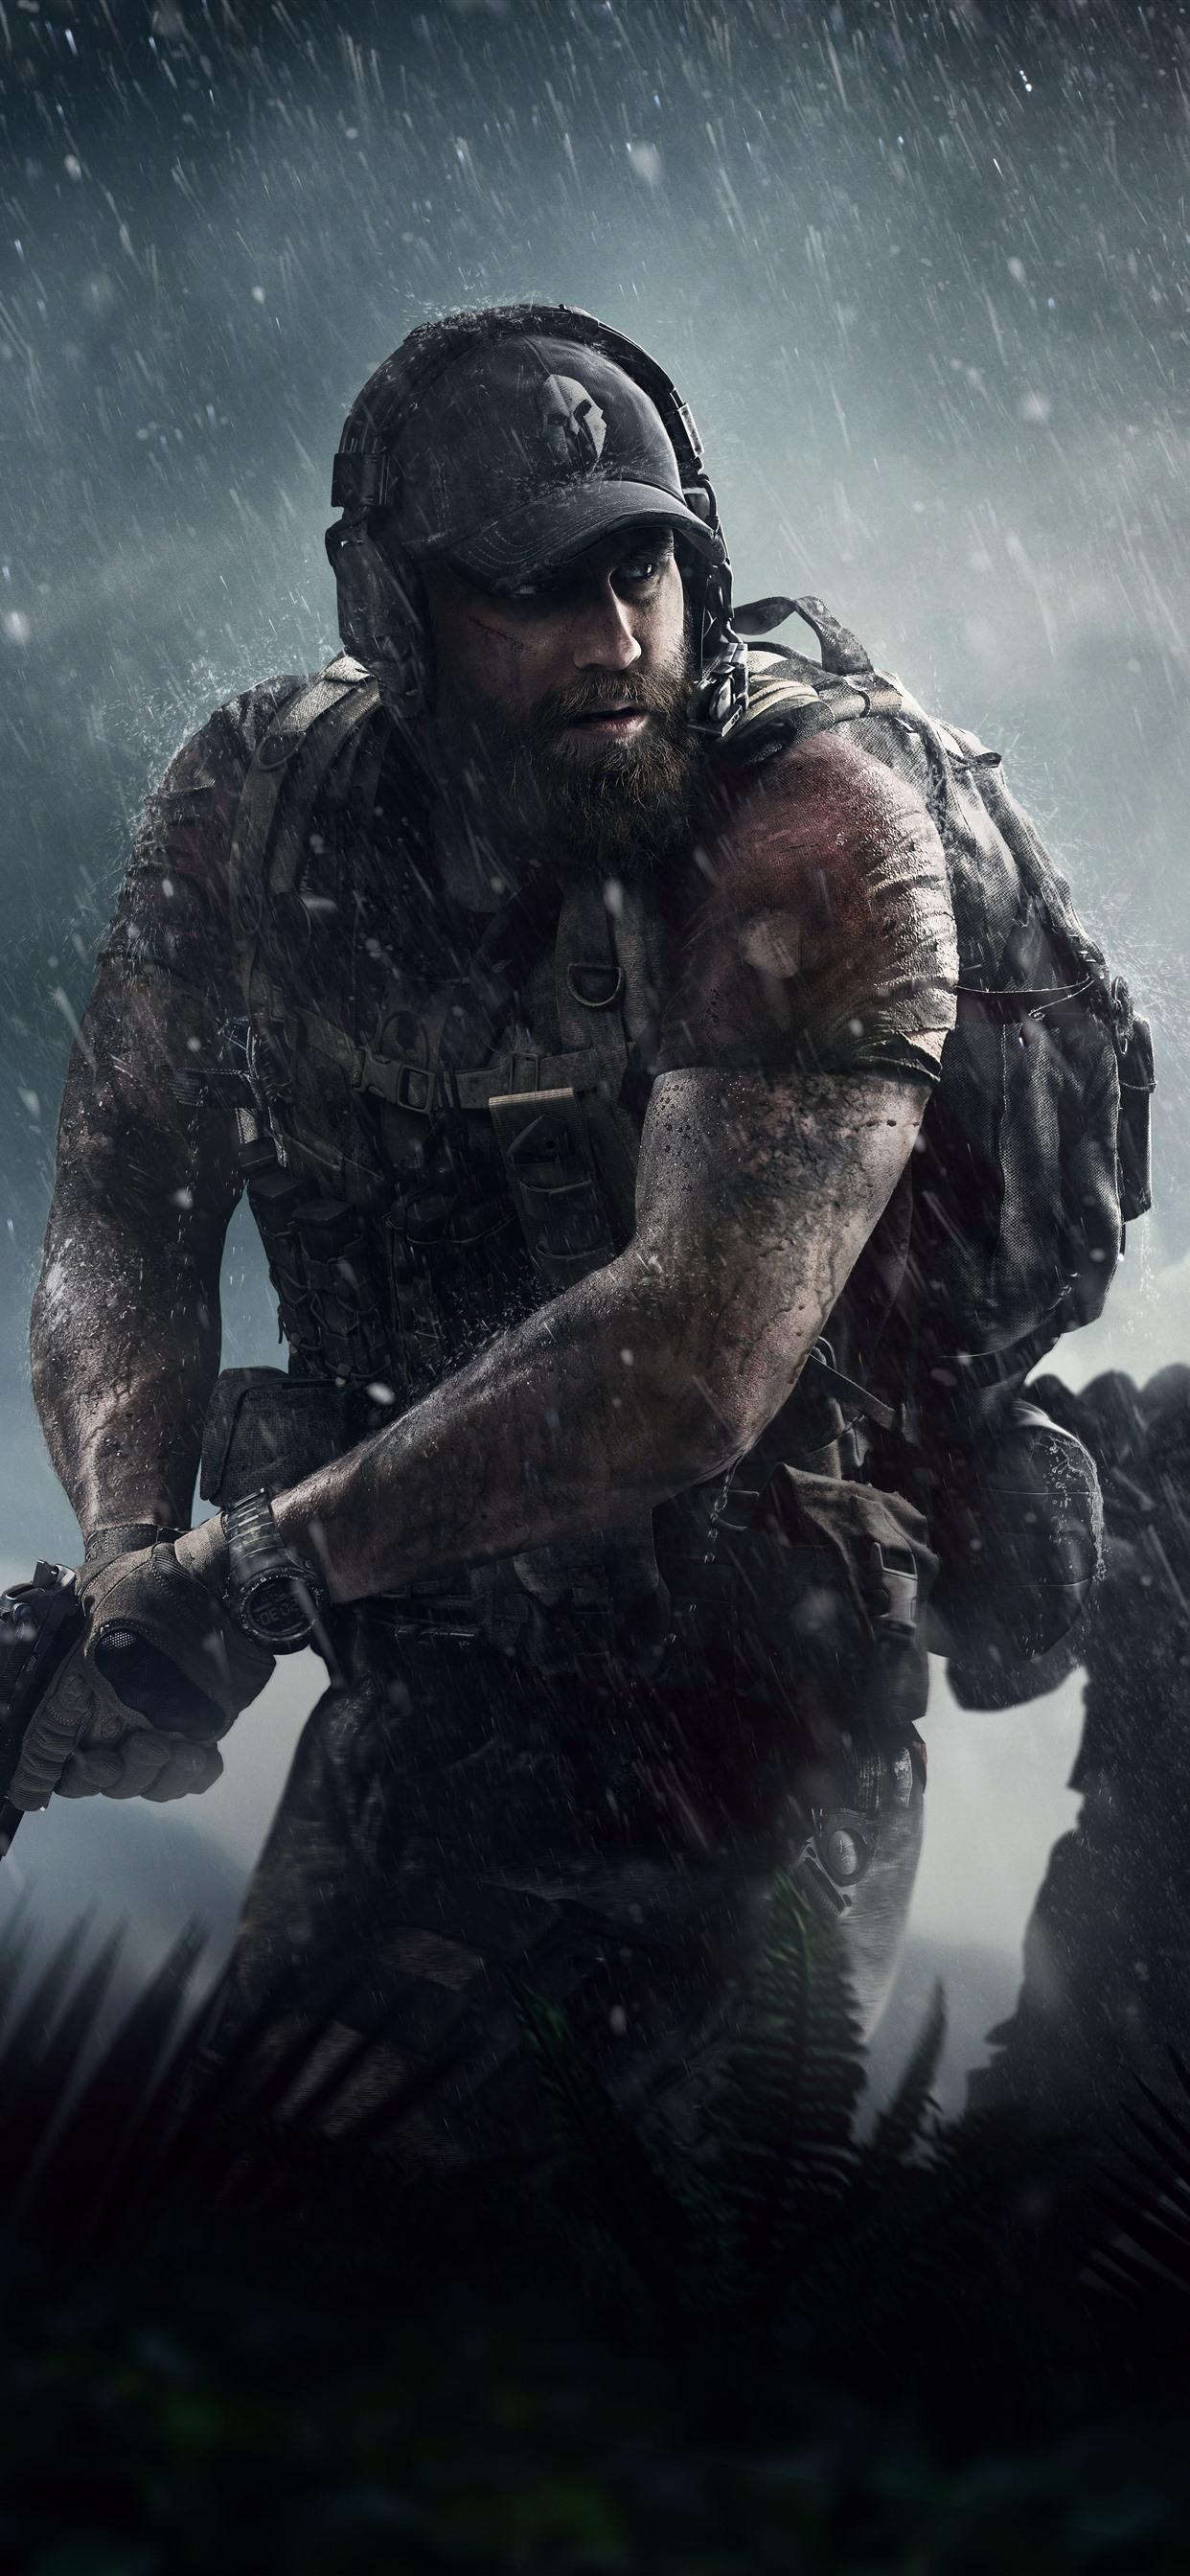 Ghost Recon Breakpoint Iphone Wallpapers Wallpaper Cave